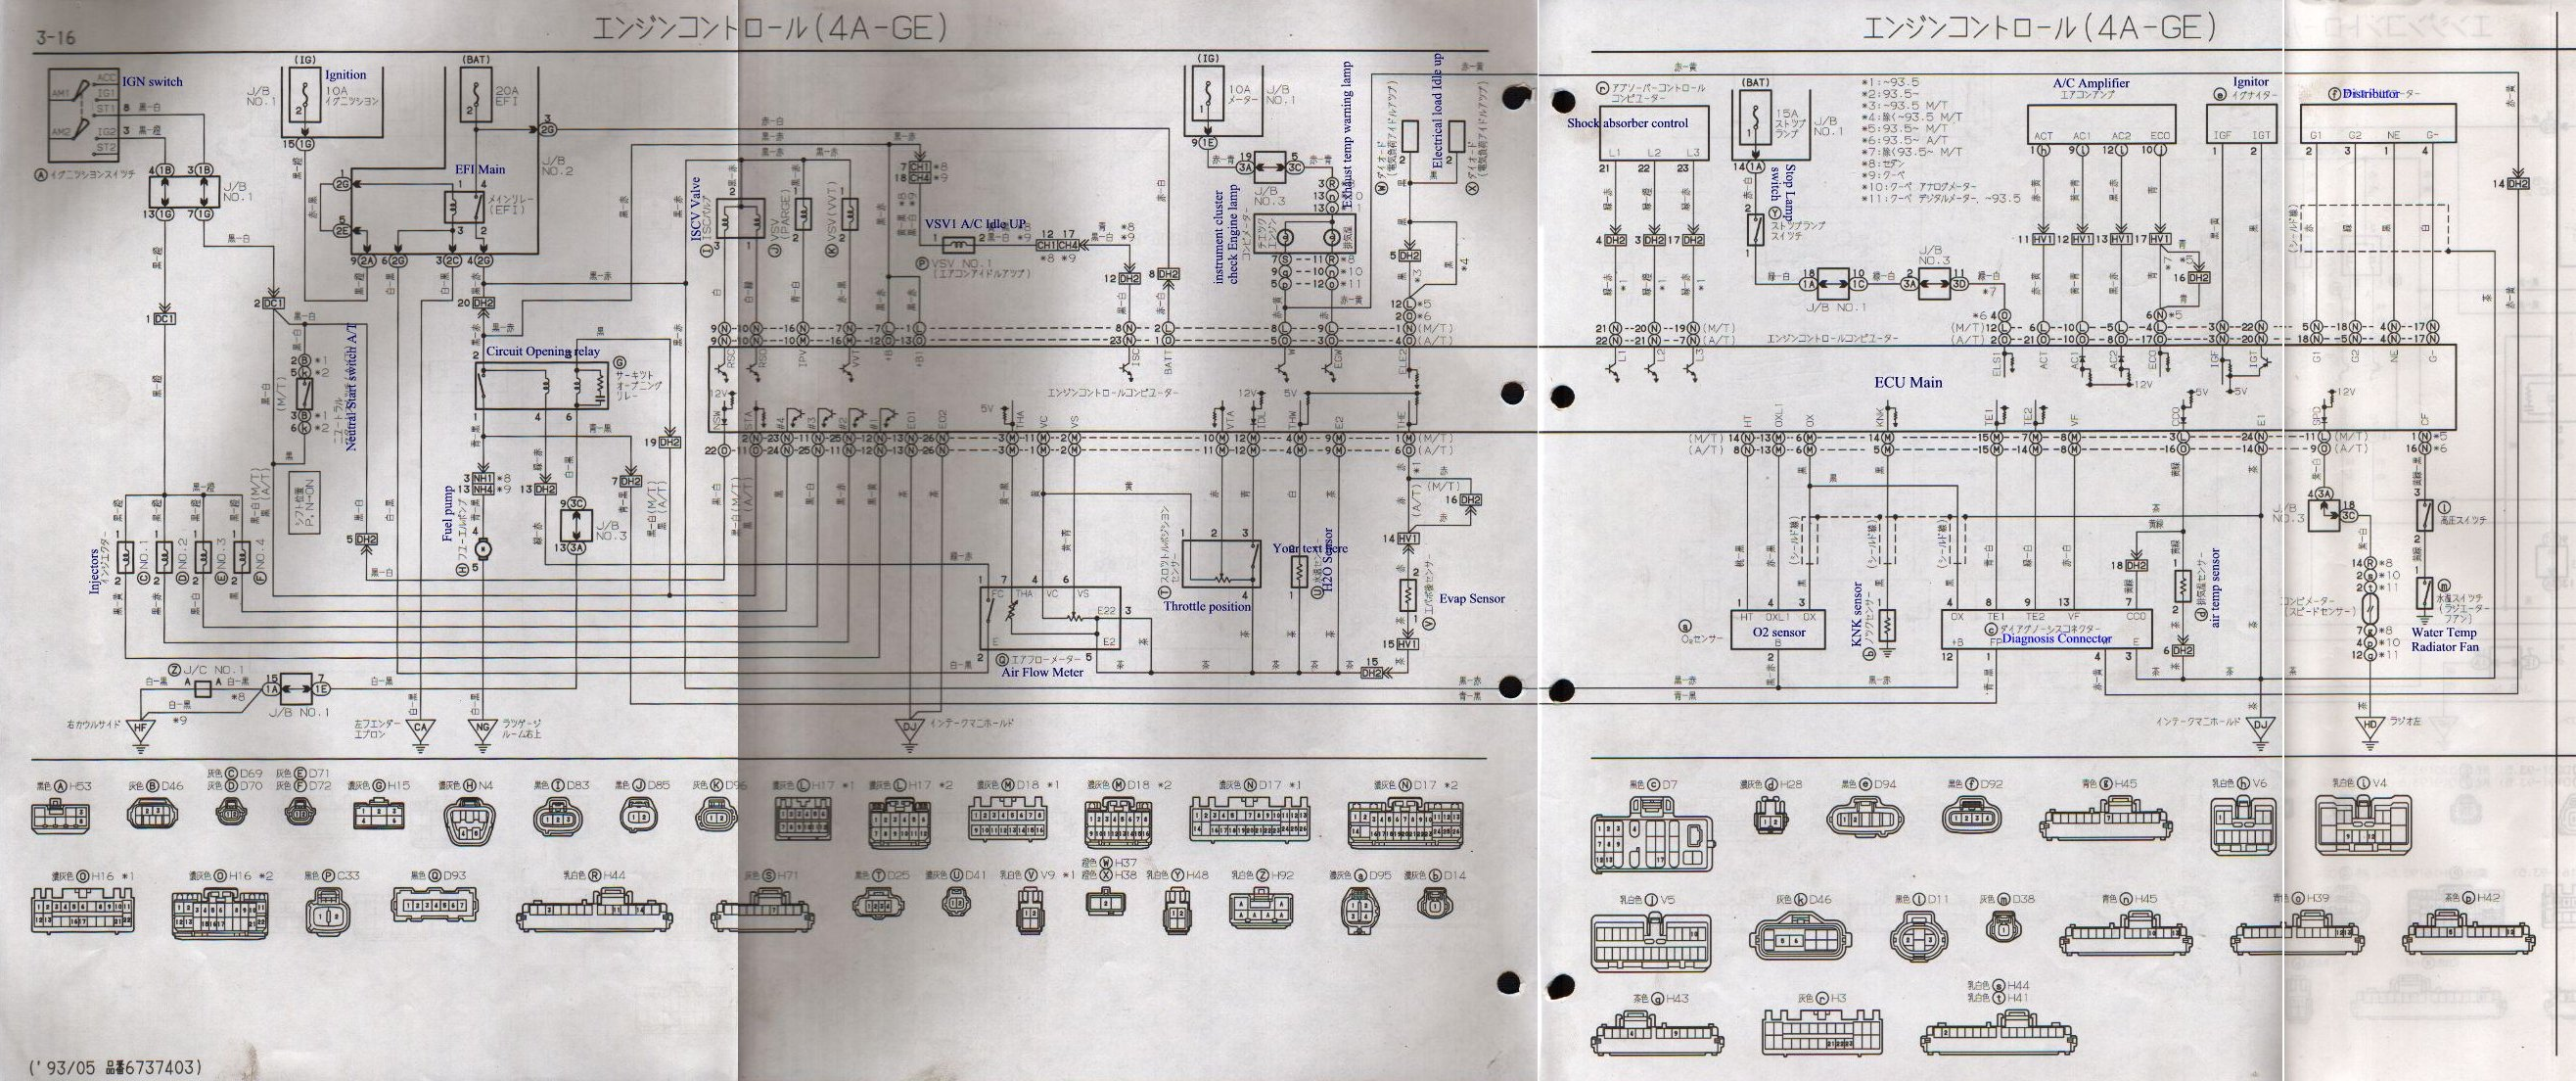 Connector Pinout And Schematic